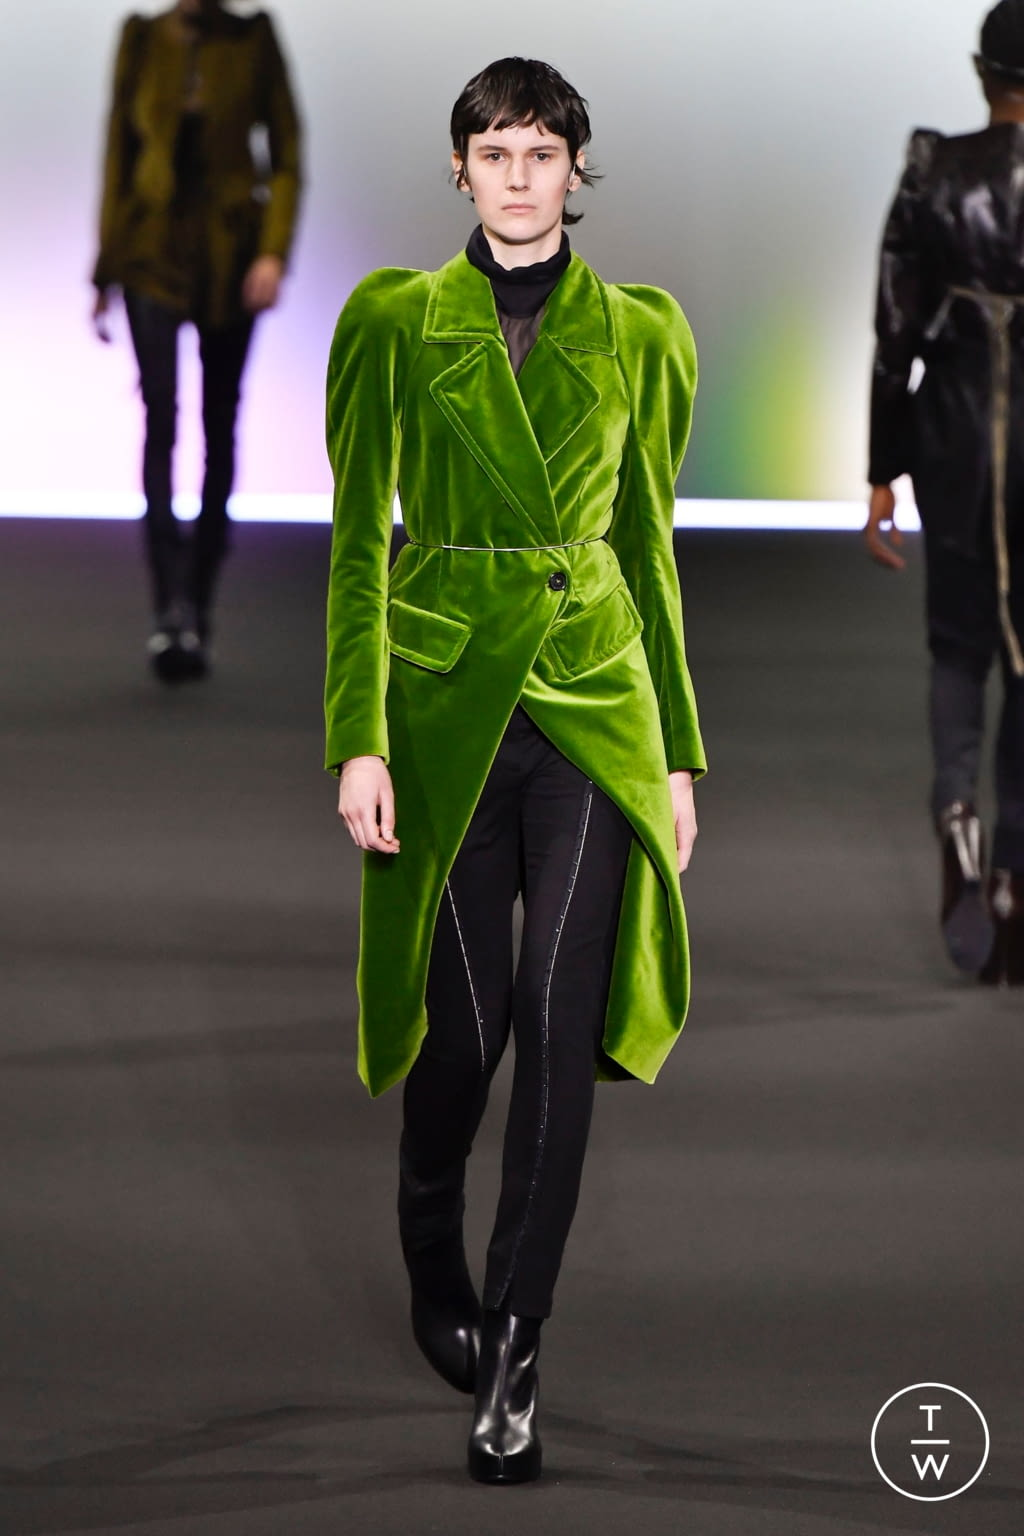 Fashion Week Paris Fall/Winter 2020 look 16 de la collection Ann Demeulemeester womenswear